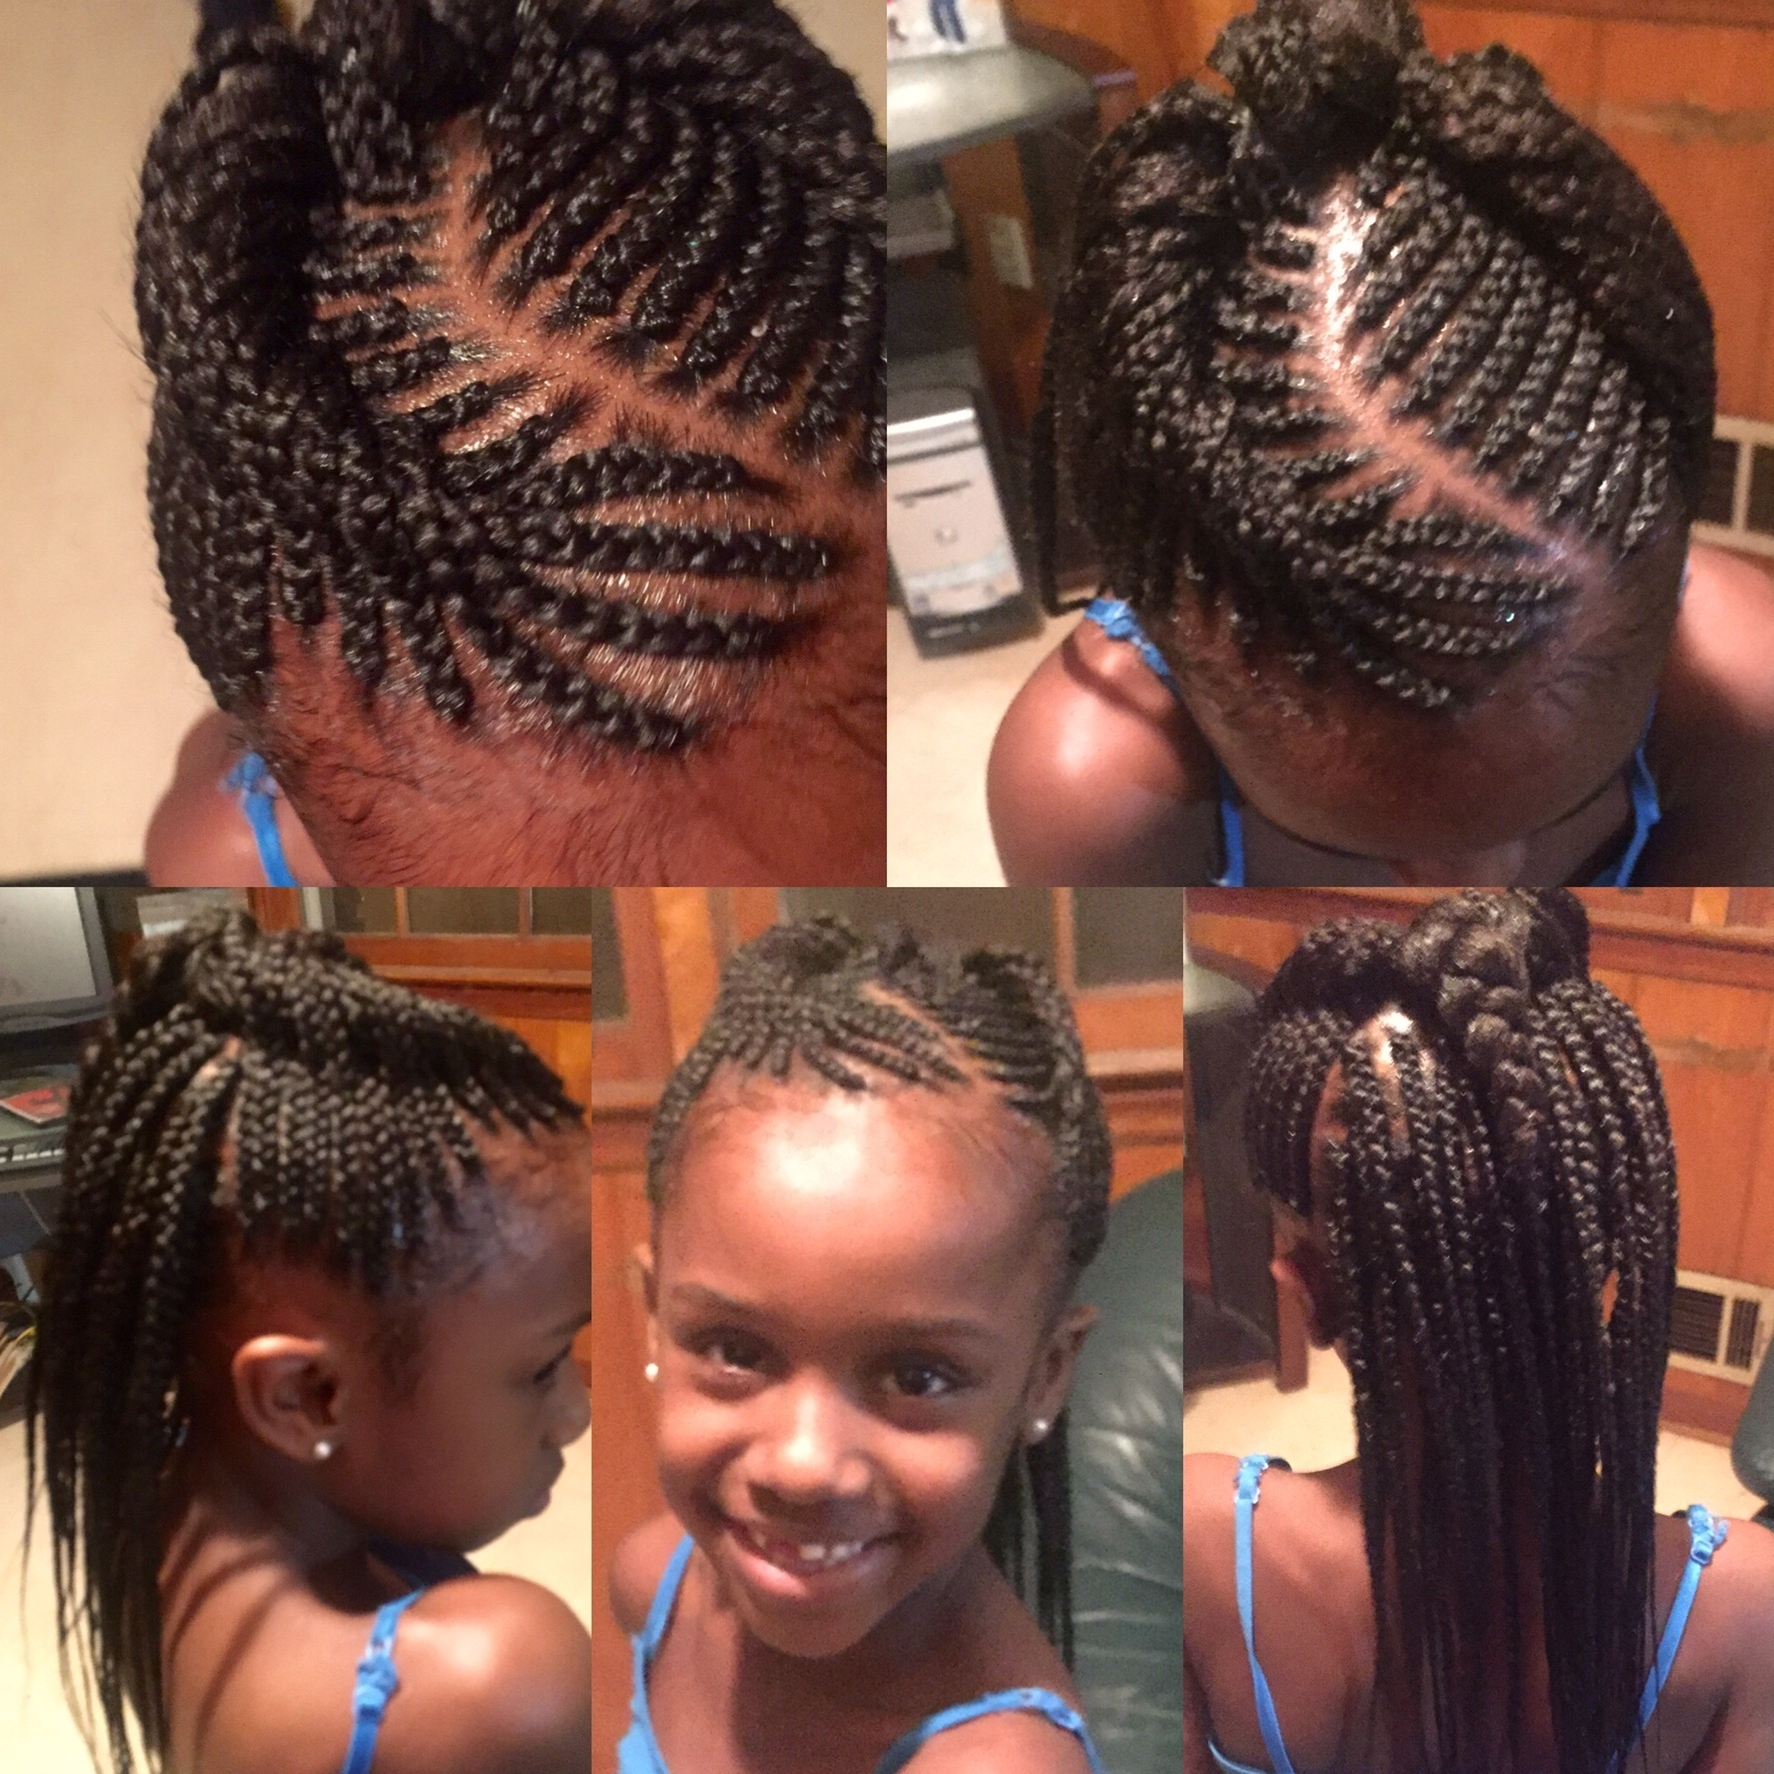 Cornrow Braid Hairstyles For Kids Amusing Hairstyles For Kids Braids In Recent Black Cornrows Hairstyles (View 3 of 15)